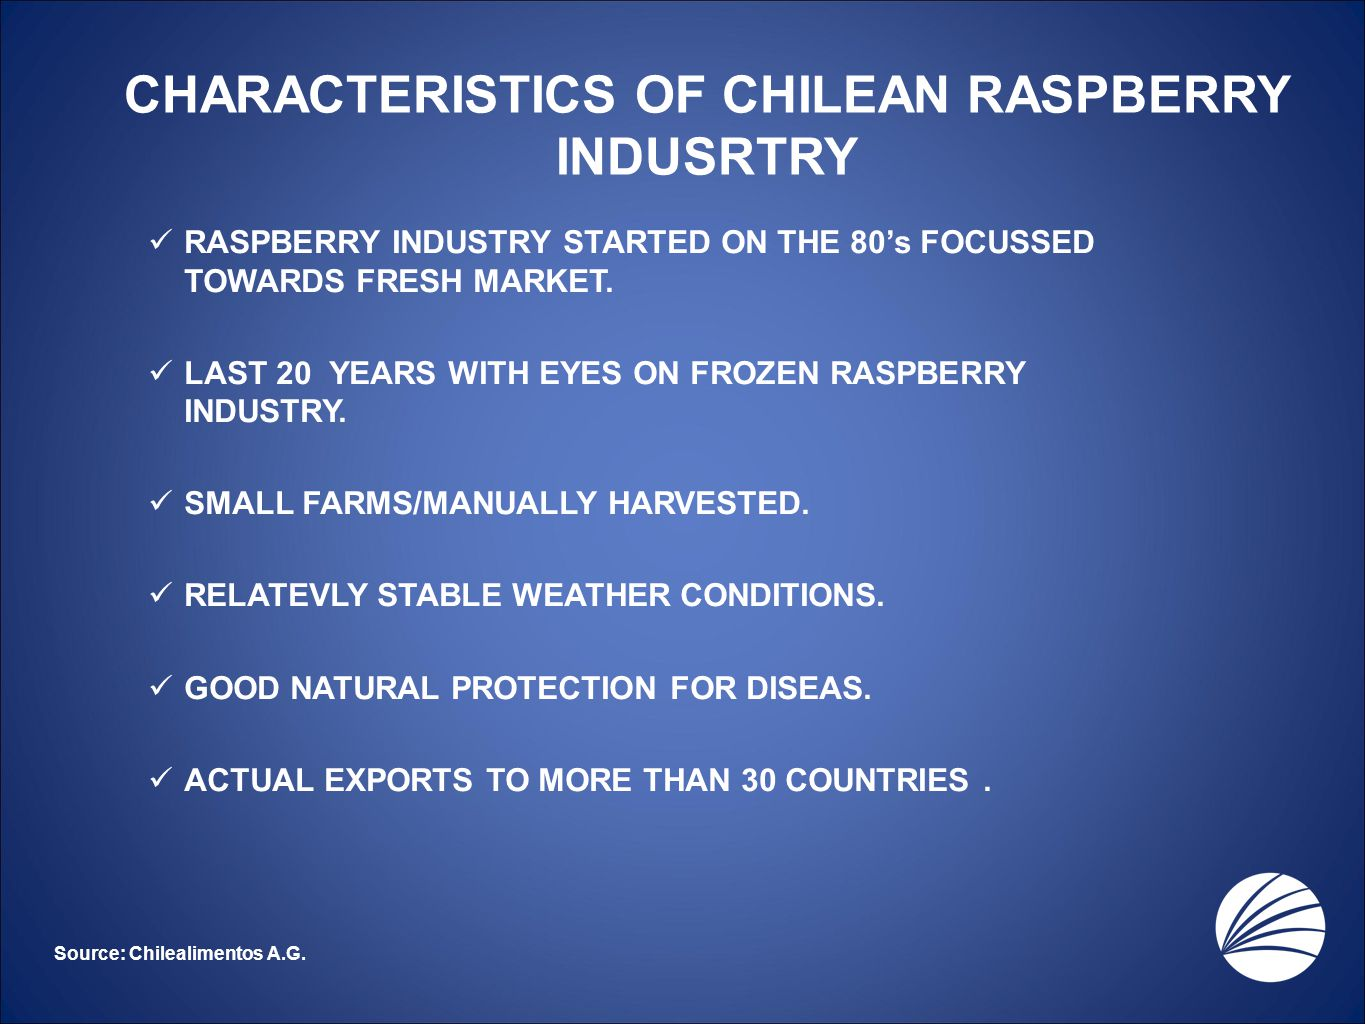 CHARACTERISTICS OF CHILEAN RASPBERRY INDUSRTRY